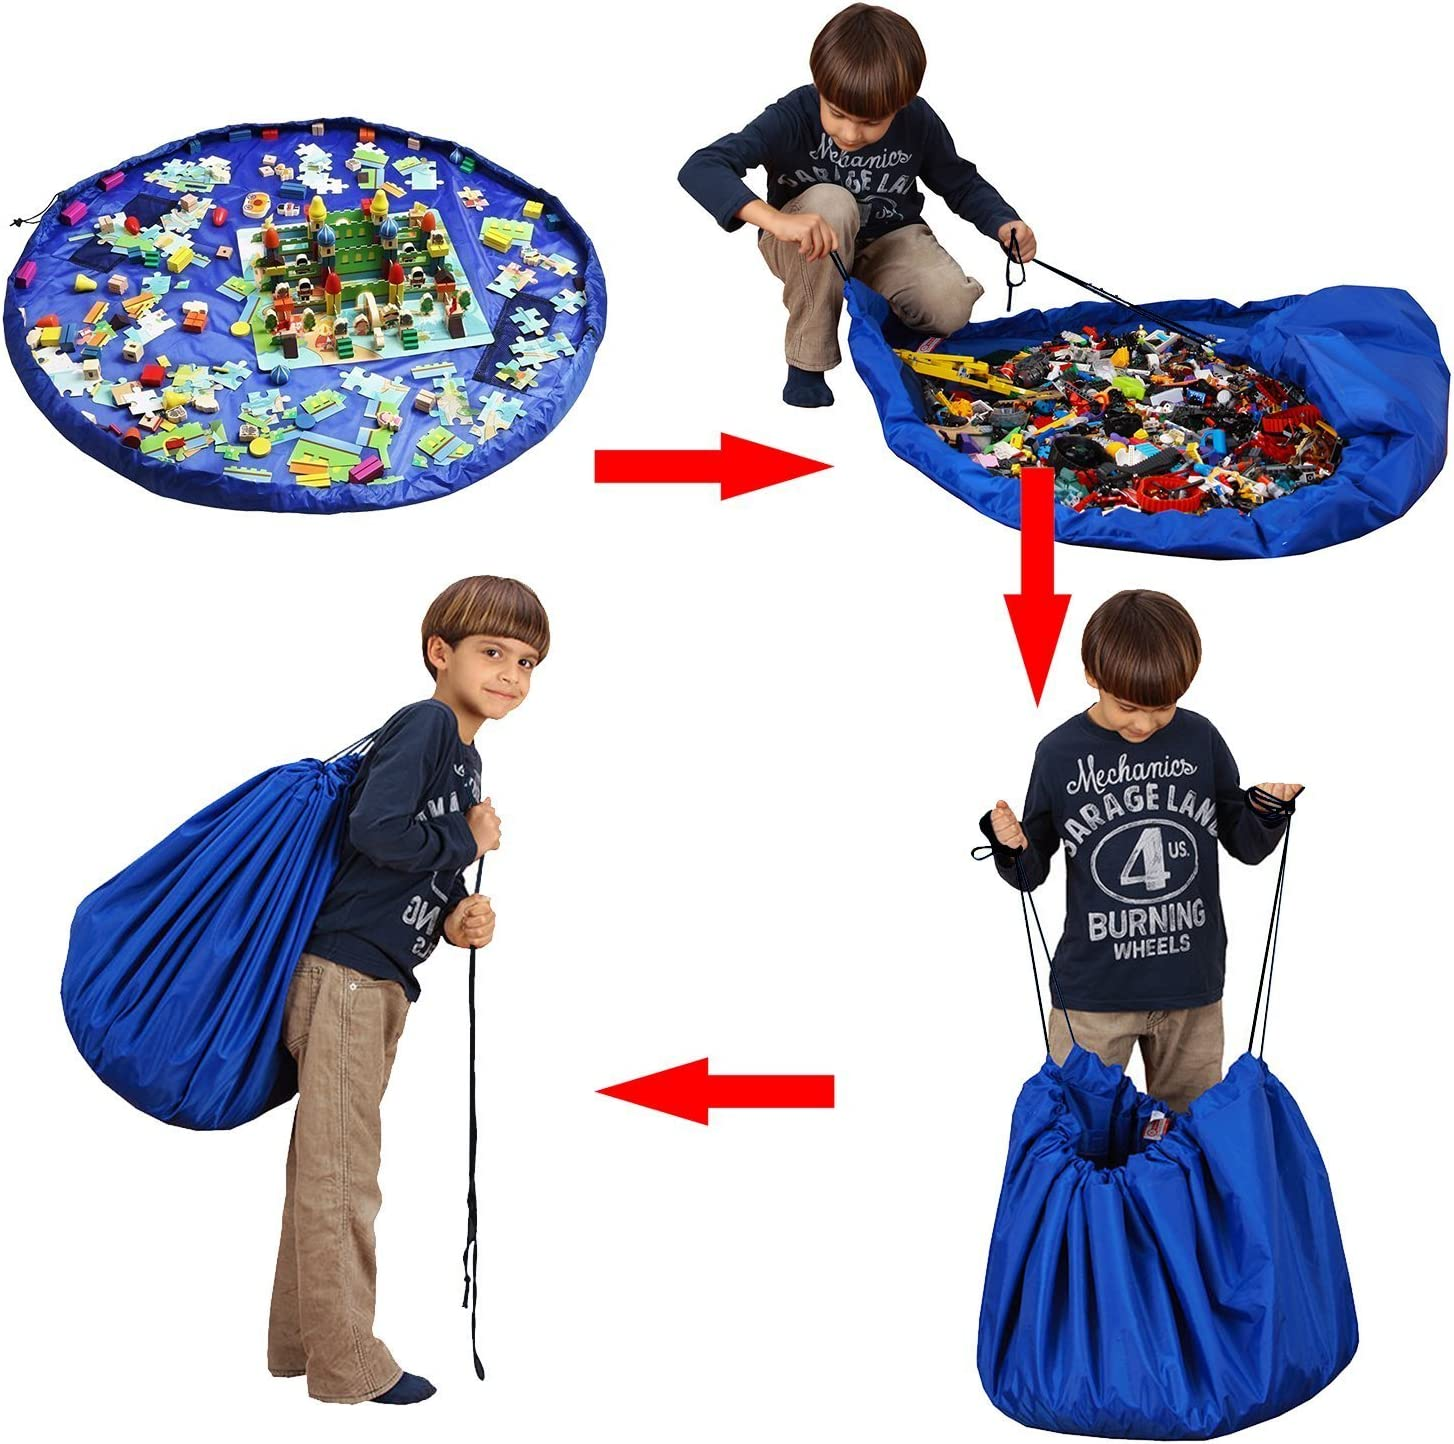 Foldable Clean Up Rug for Home and Outdoor Ferryman Toy Storage Bag Kids Rug Child Toy Organizer ,60 inch Play and Go Portable for Lego Building Block blue